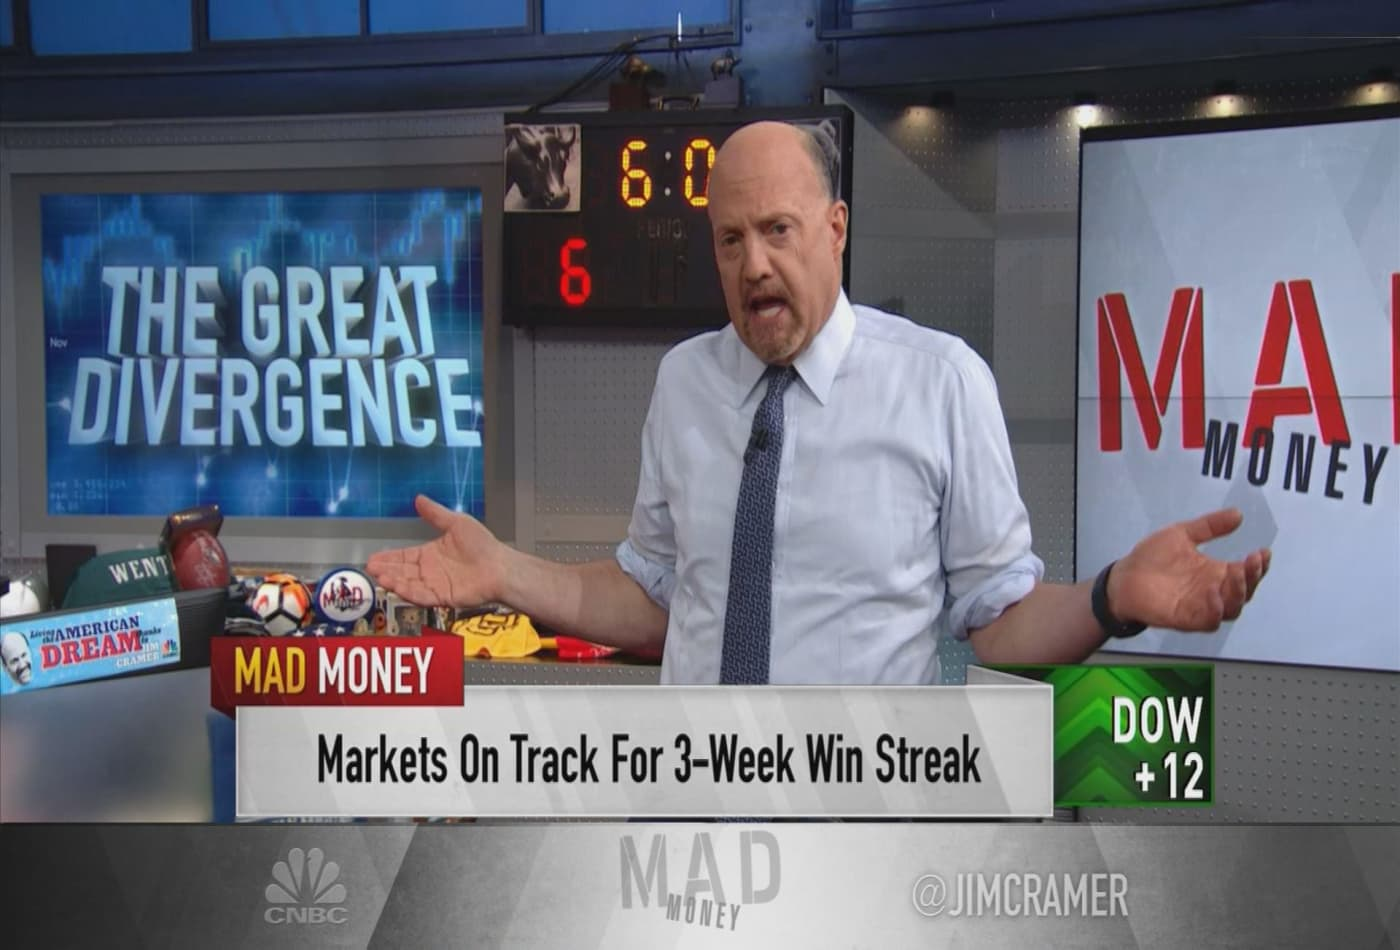 Jim Cramer: The pandemic led to 'one of the greatest wealth transfers in history'